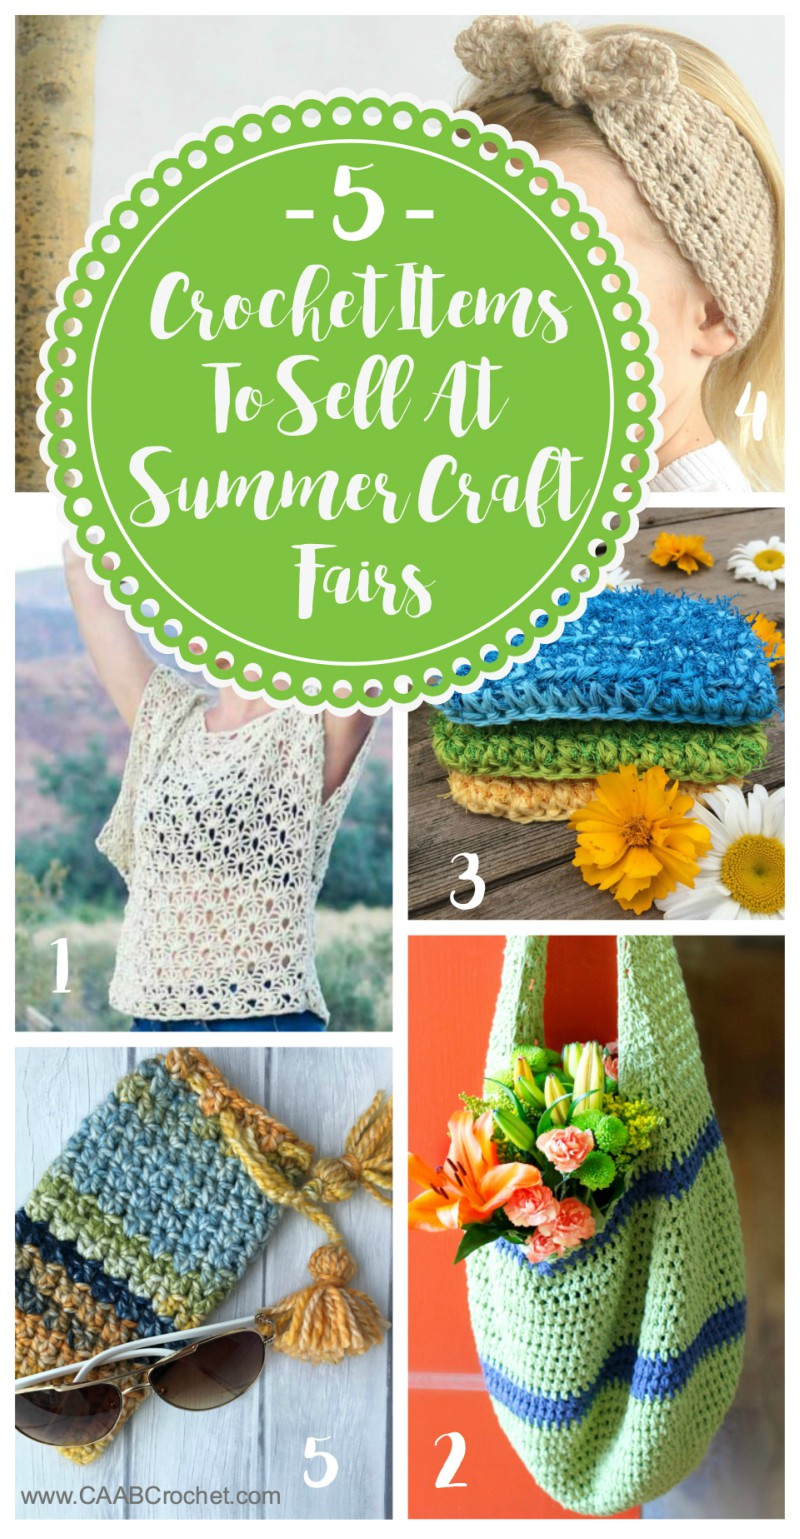 summer craft fair ideas crochet items to sell at summer craft fairs ideas for 5505